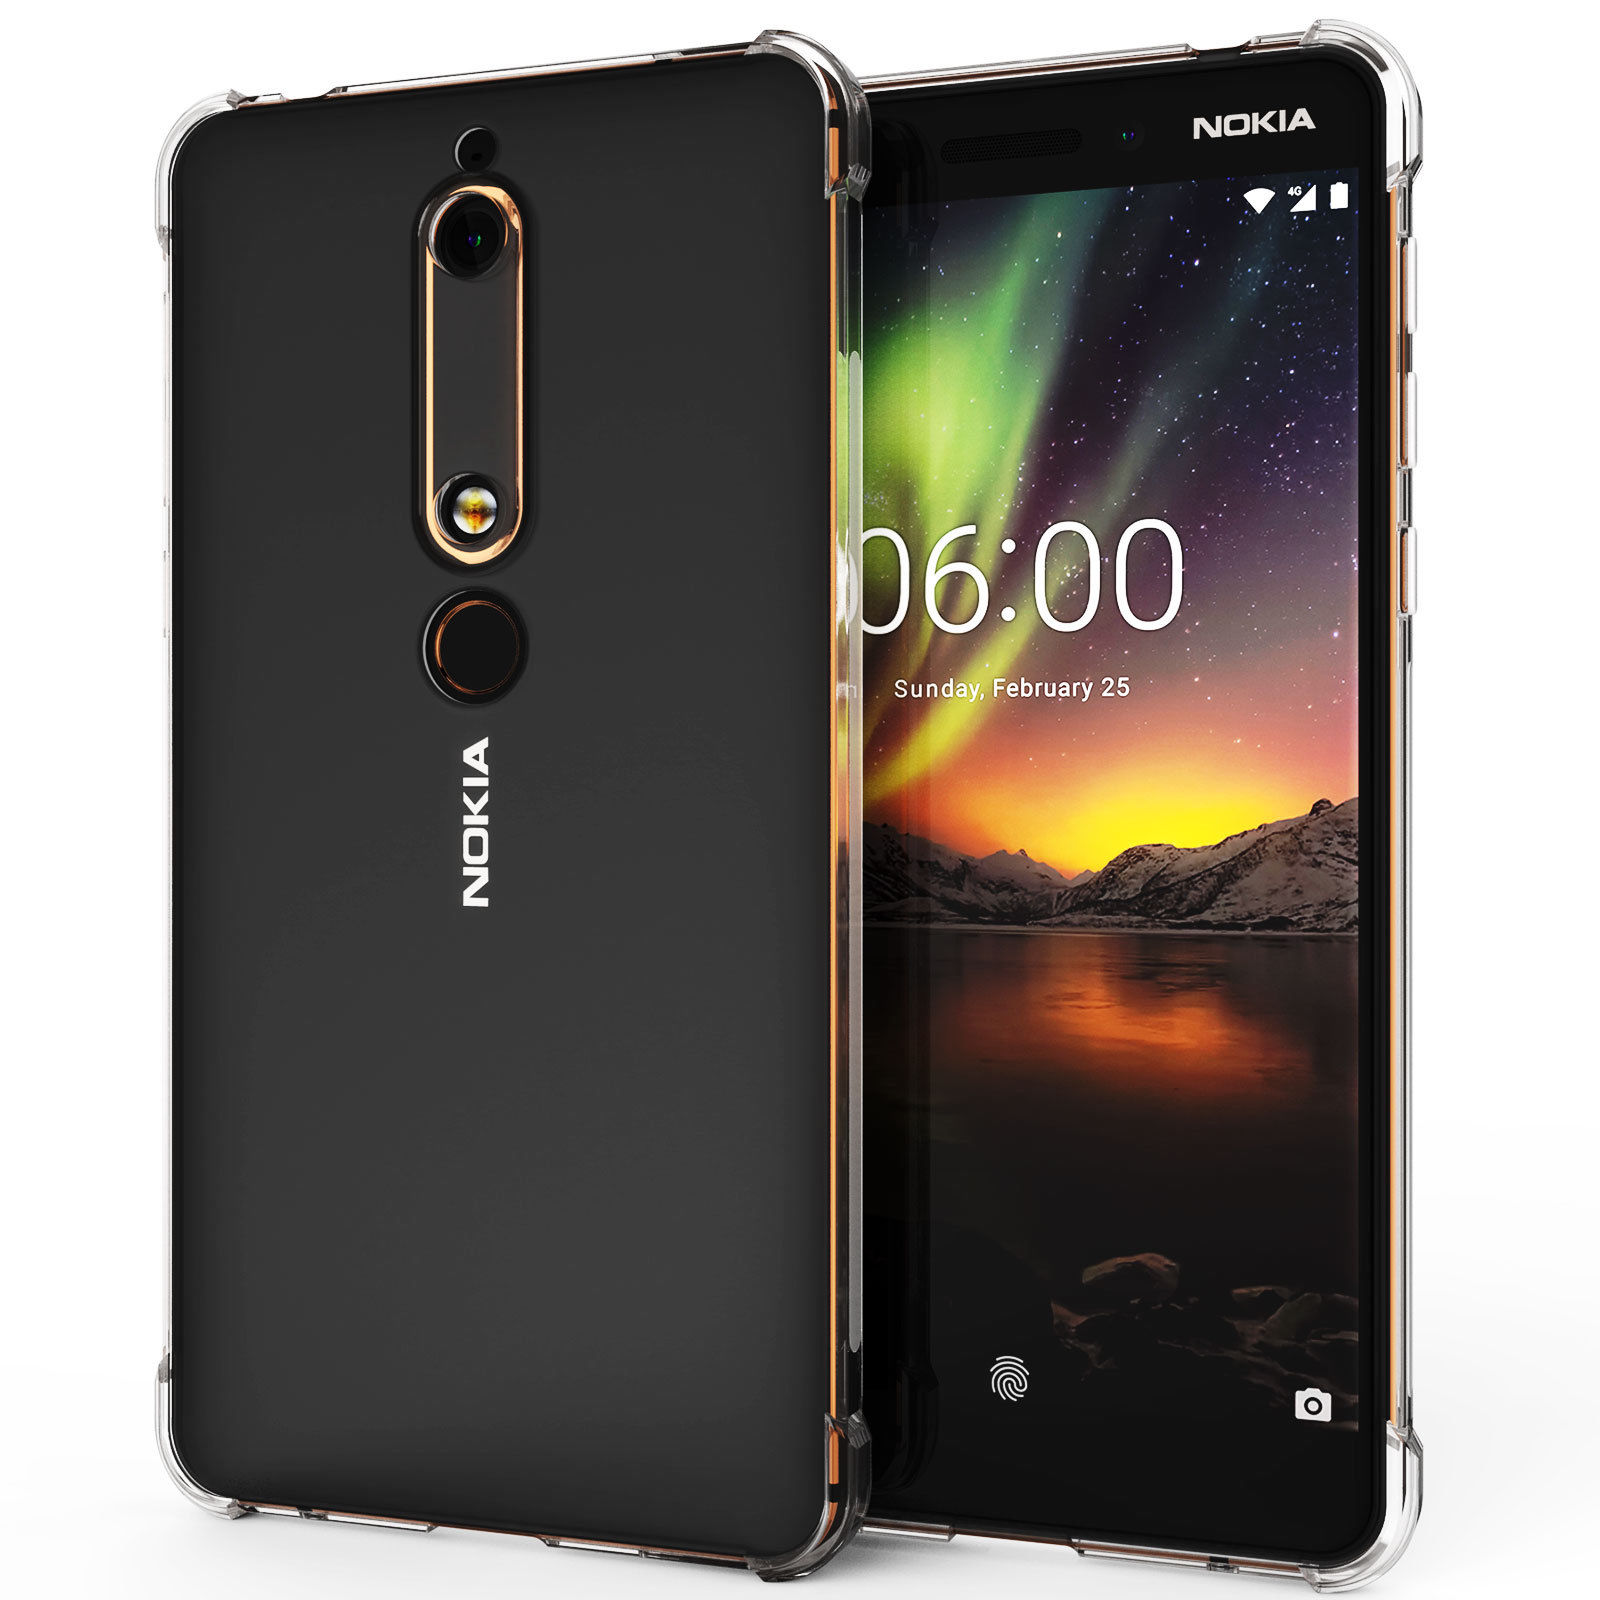 For Nokia 6 2018 Case Nokia 6.1 Case Heavy Duty Drop-proof Armor Soft TPU Case for Nokia 1 2 3 5 6 7 8 Sirocco X5 X6 3.1 4.2 3.2